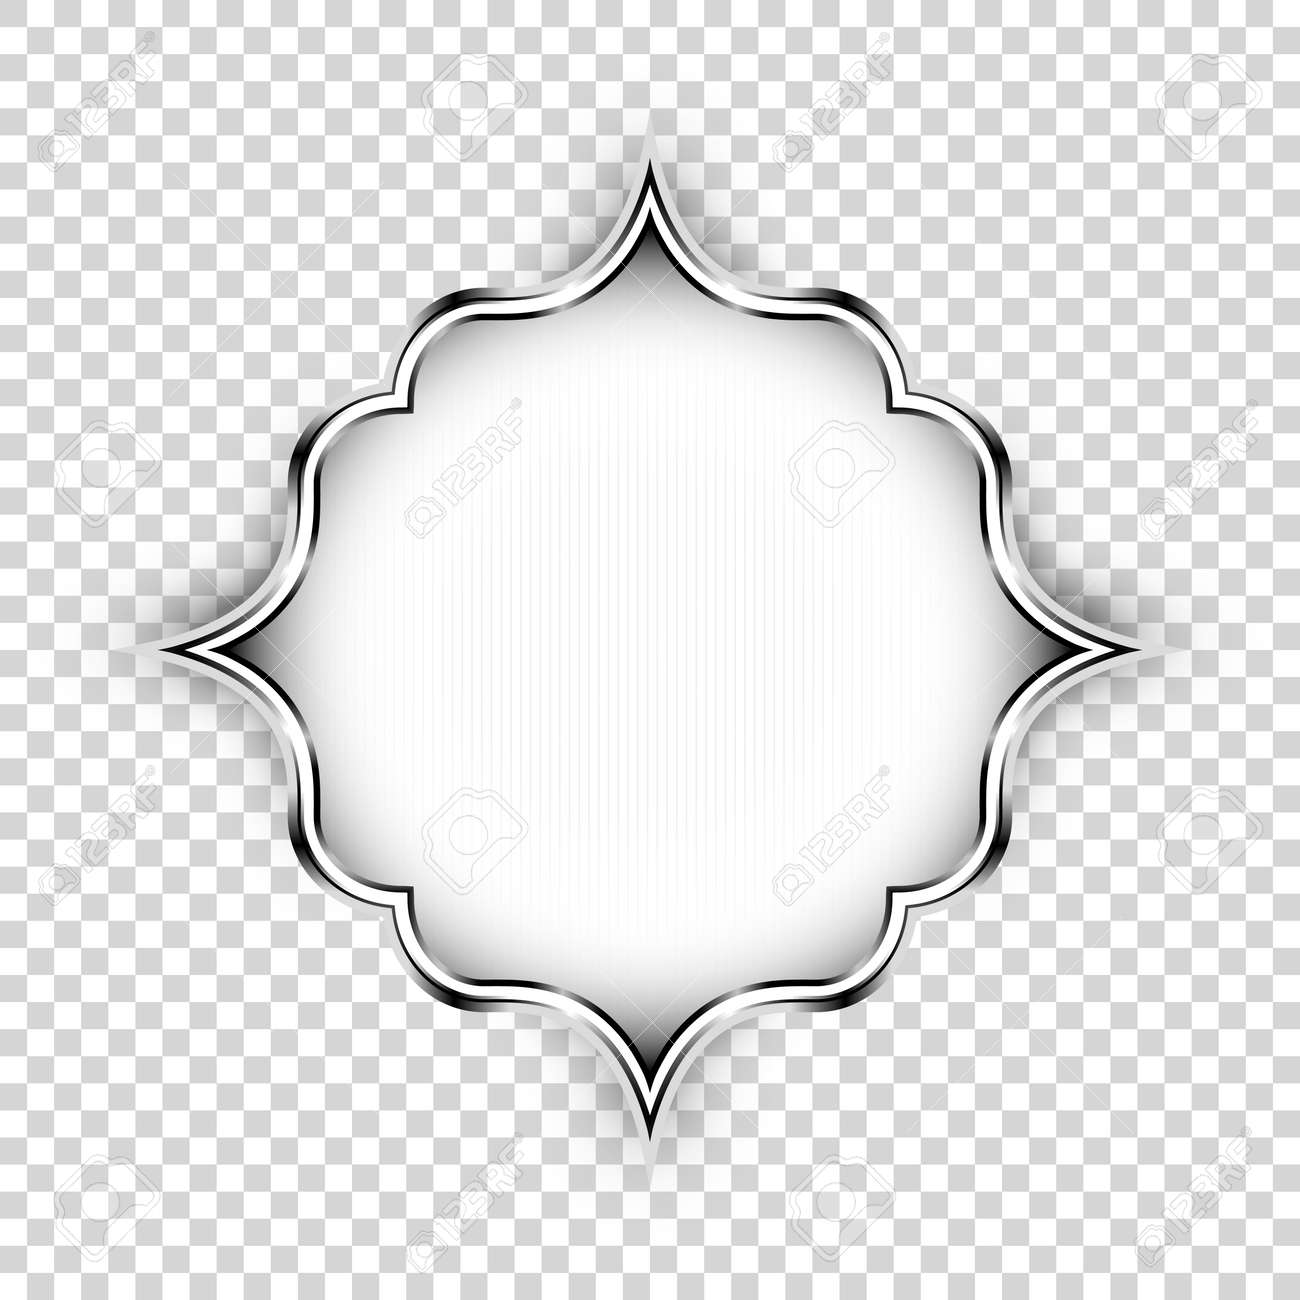 vector silver shape decorative art design element islamic ornamental royalty free cliparts vectors and stock illustration image 56417811 vector silver shape decorative art design element islamic ornamental royalty free cliparts vectors and stock illustration image 56417811